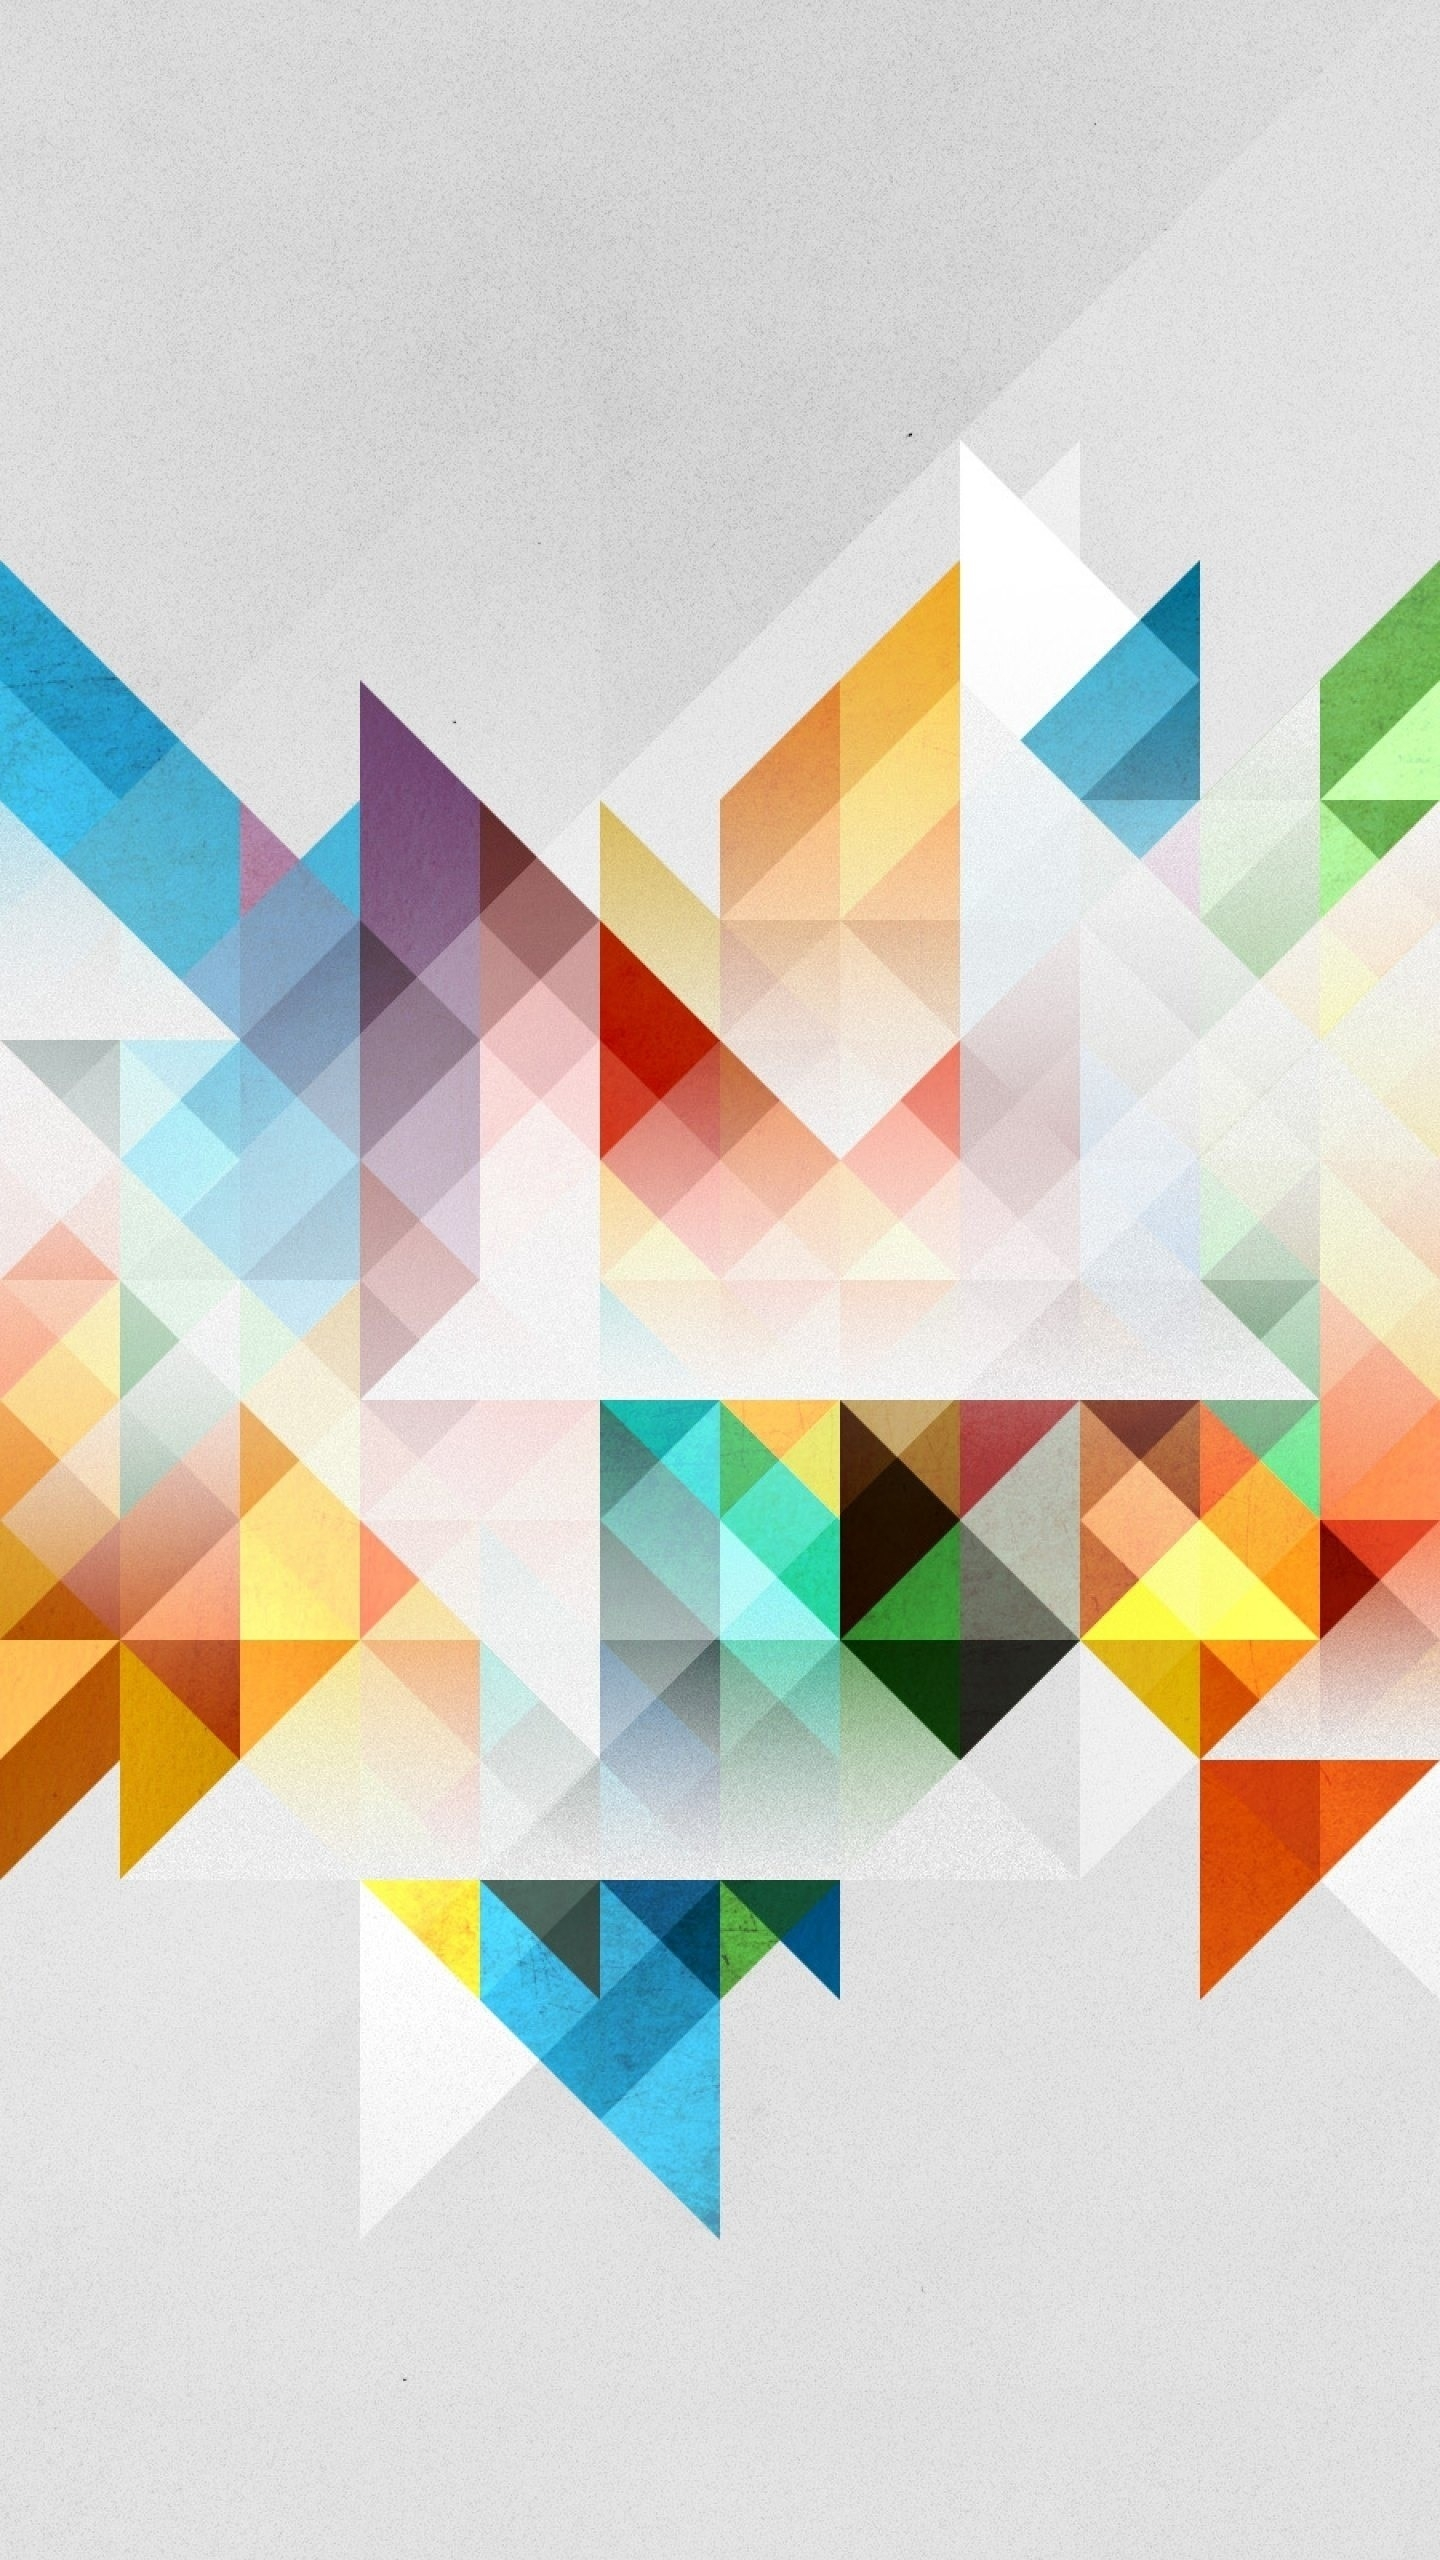 Geometric Shapes Design Wallpaper | World Of Example pertaining to Geometric Shapes Design Wallpaper 24940